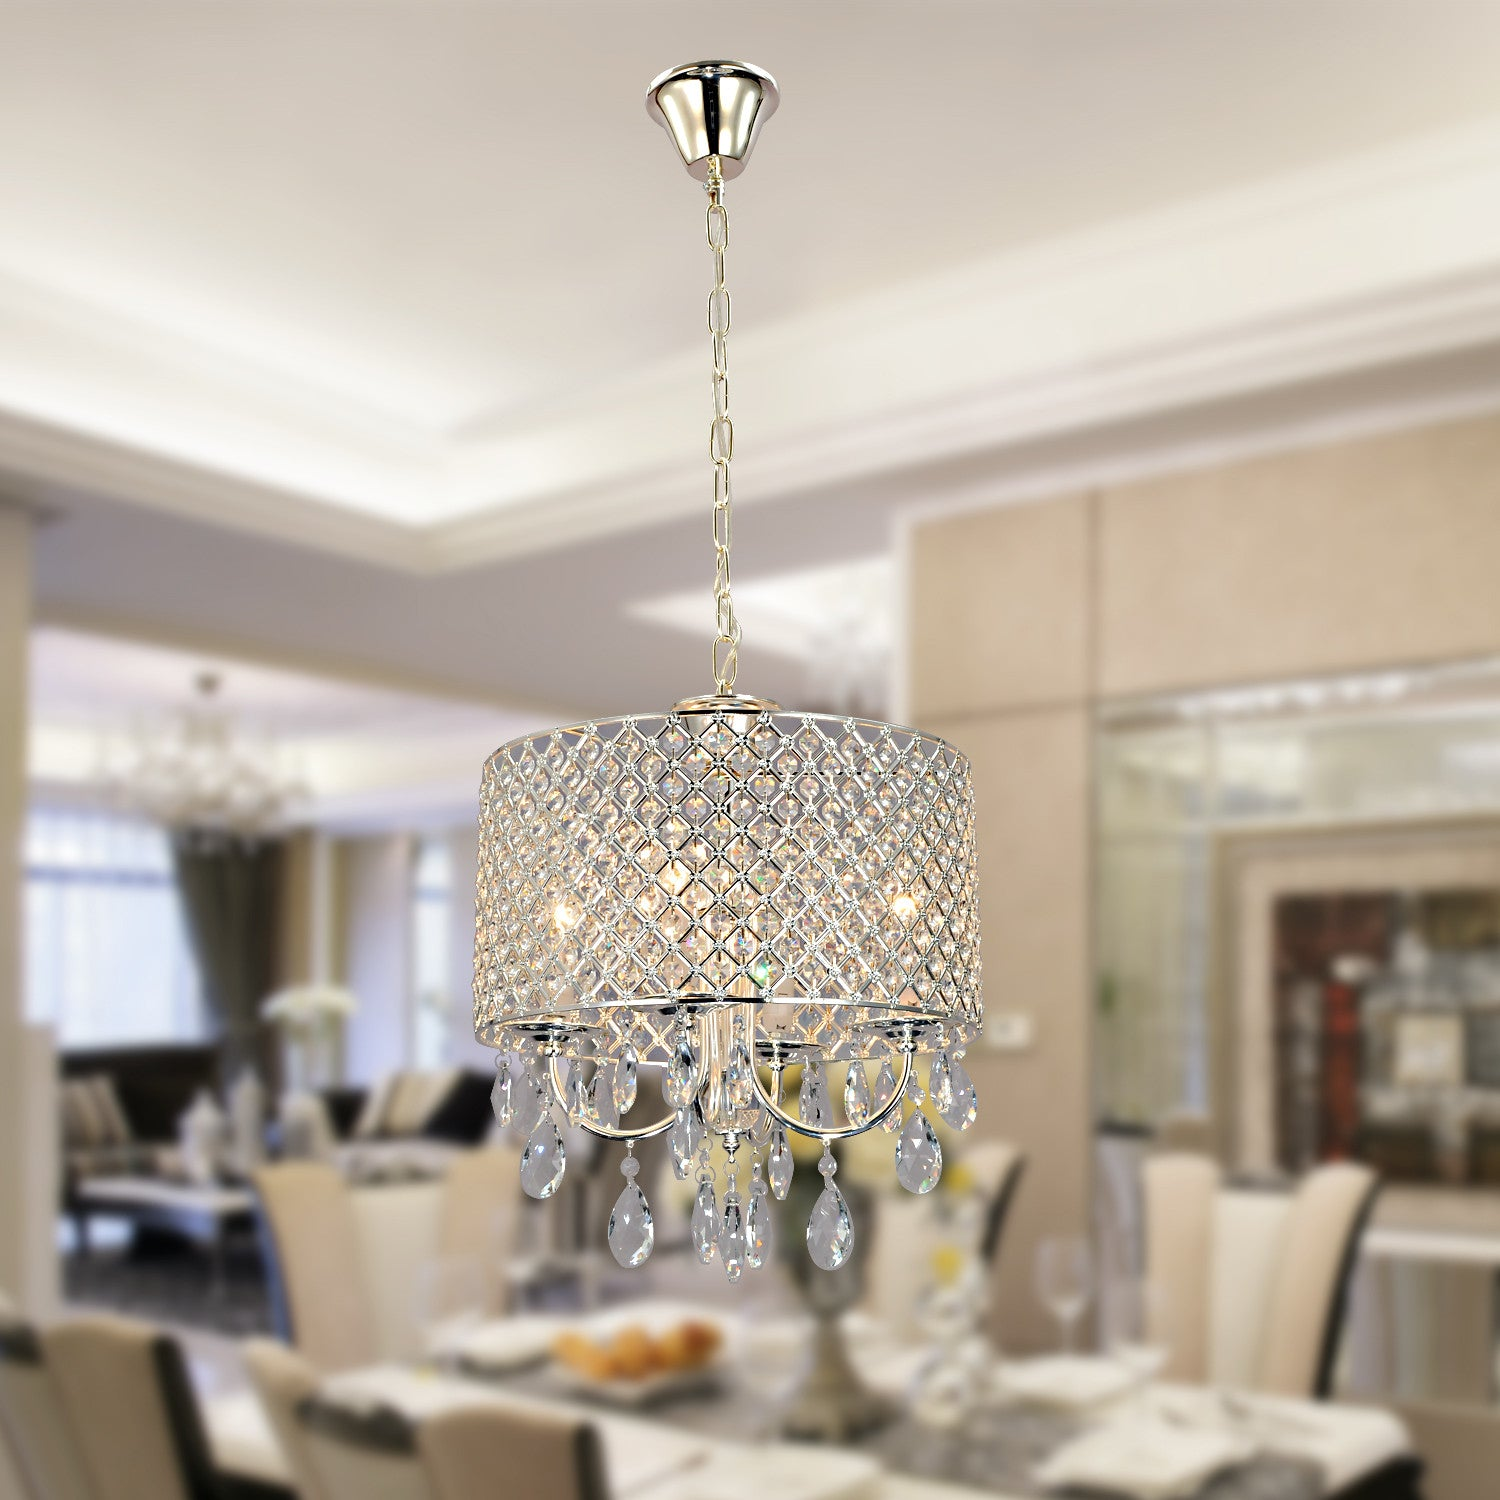 UNITARY BRAND Modern Crystal Drum Chandelier Max 240W With 4